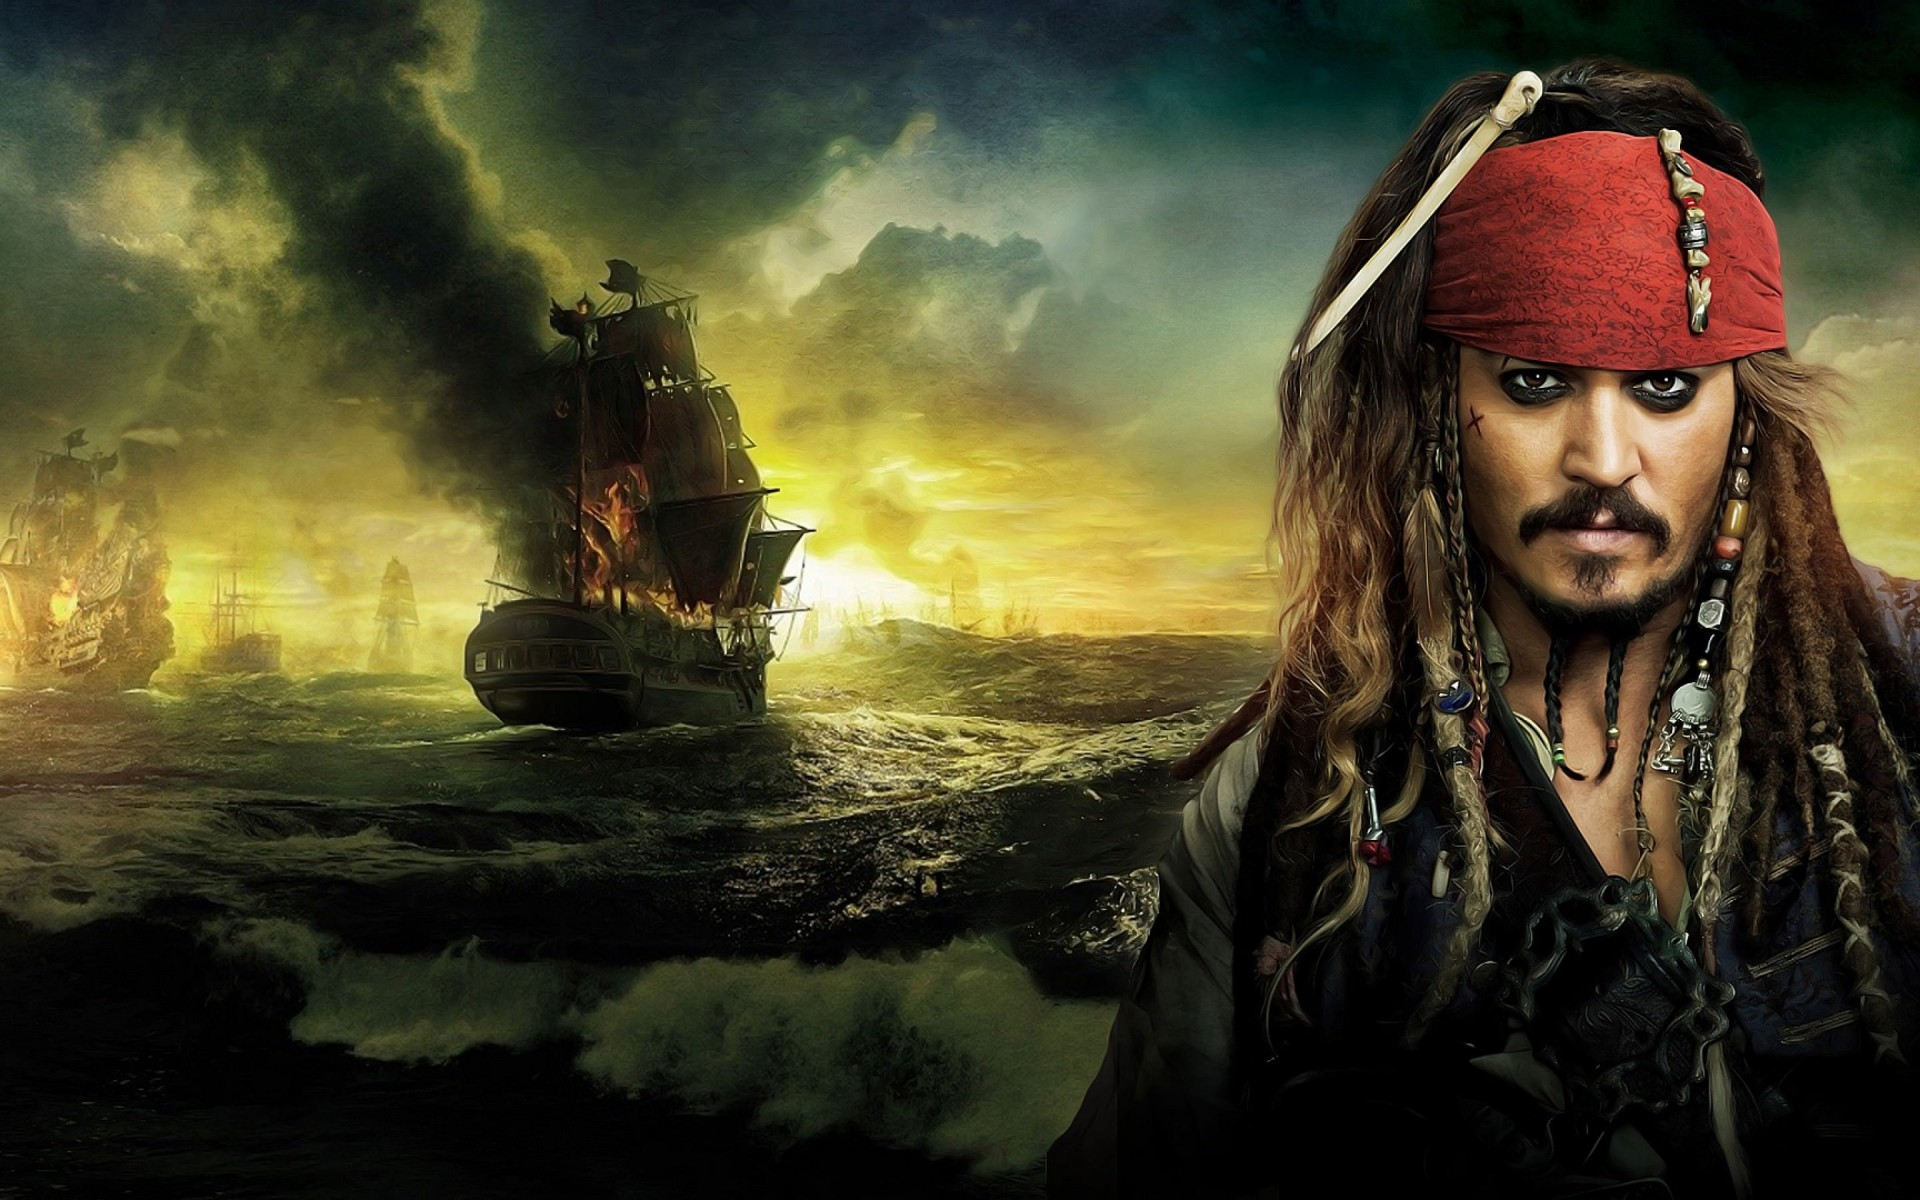 Jack Sparrow - Pirates Of The Caribbean Wallpaper for Desktop 1920x1200